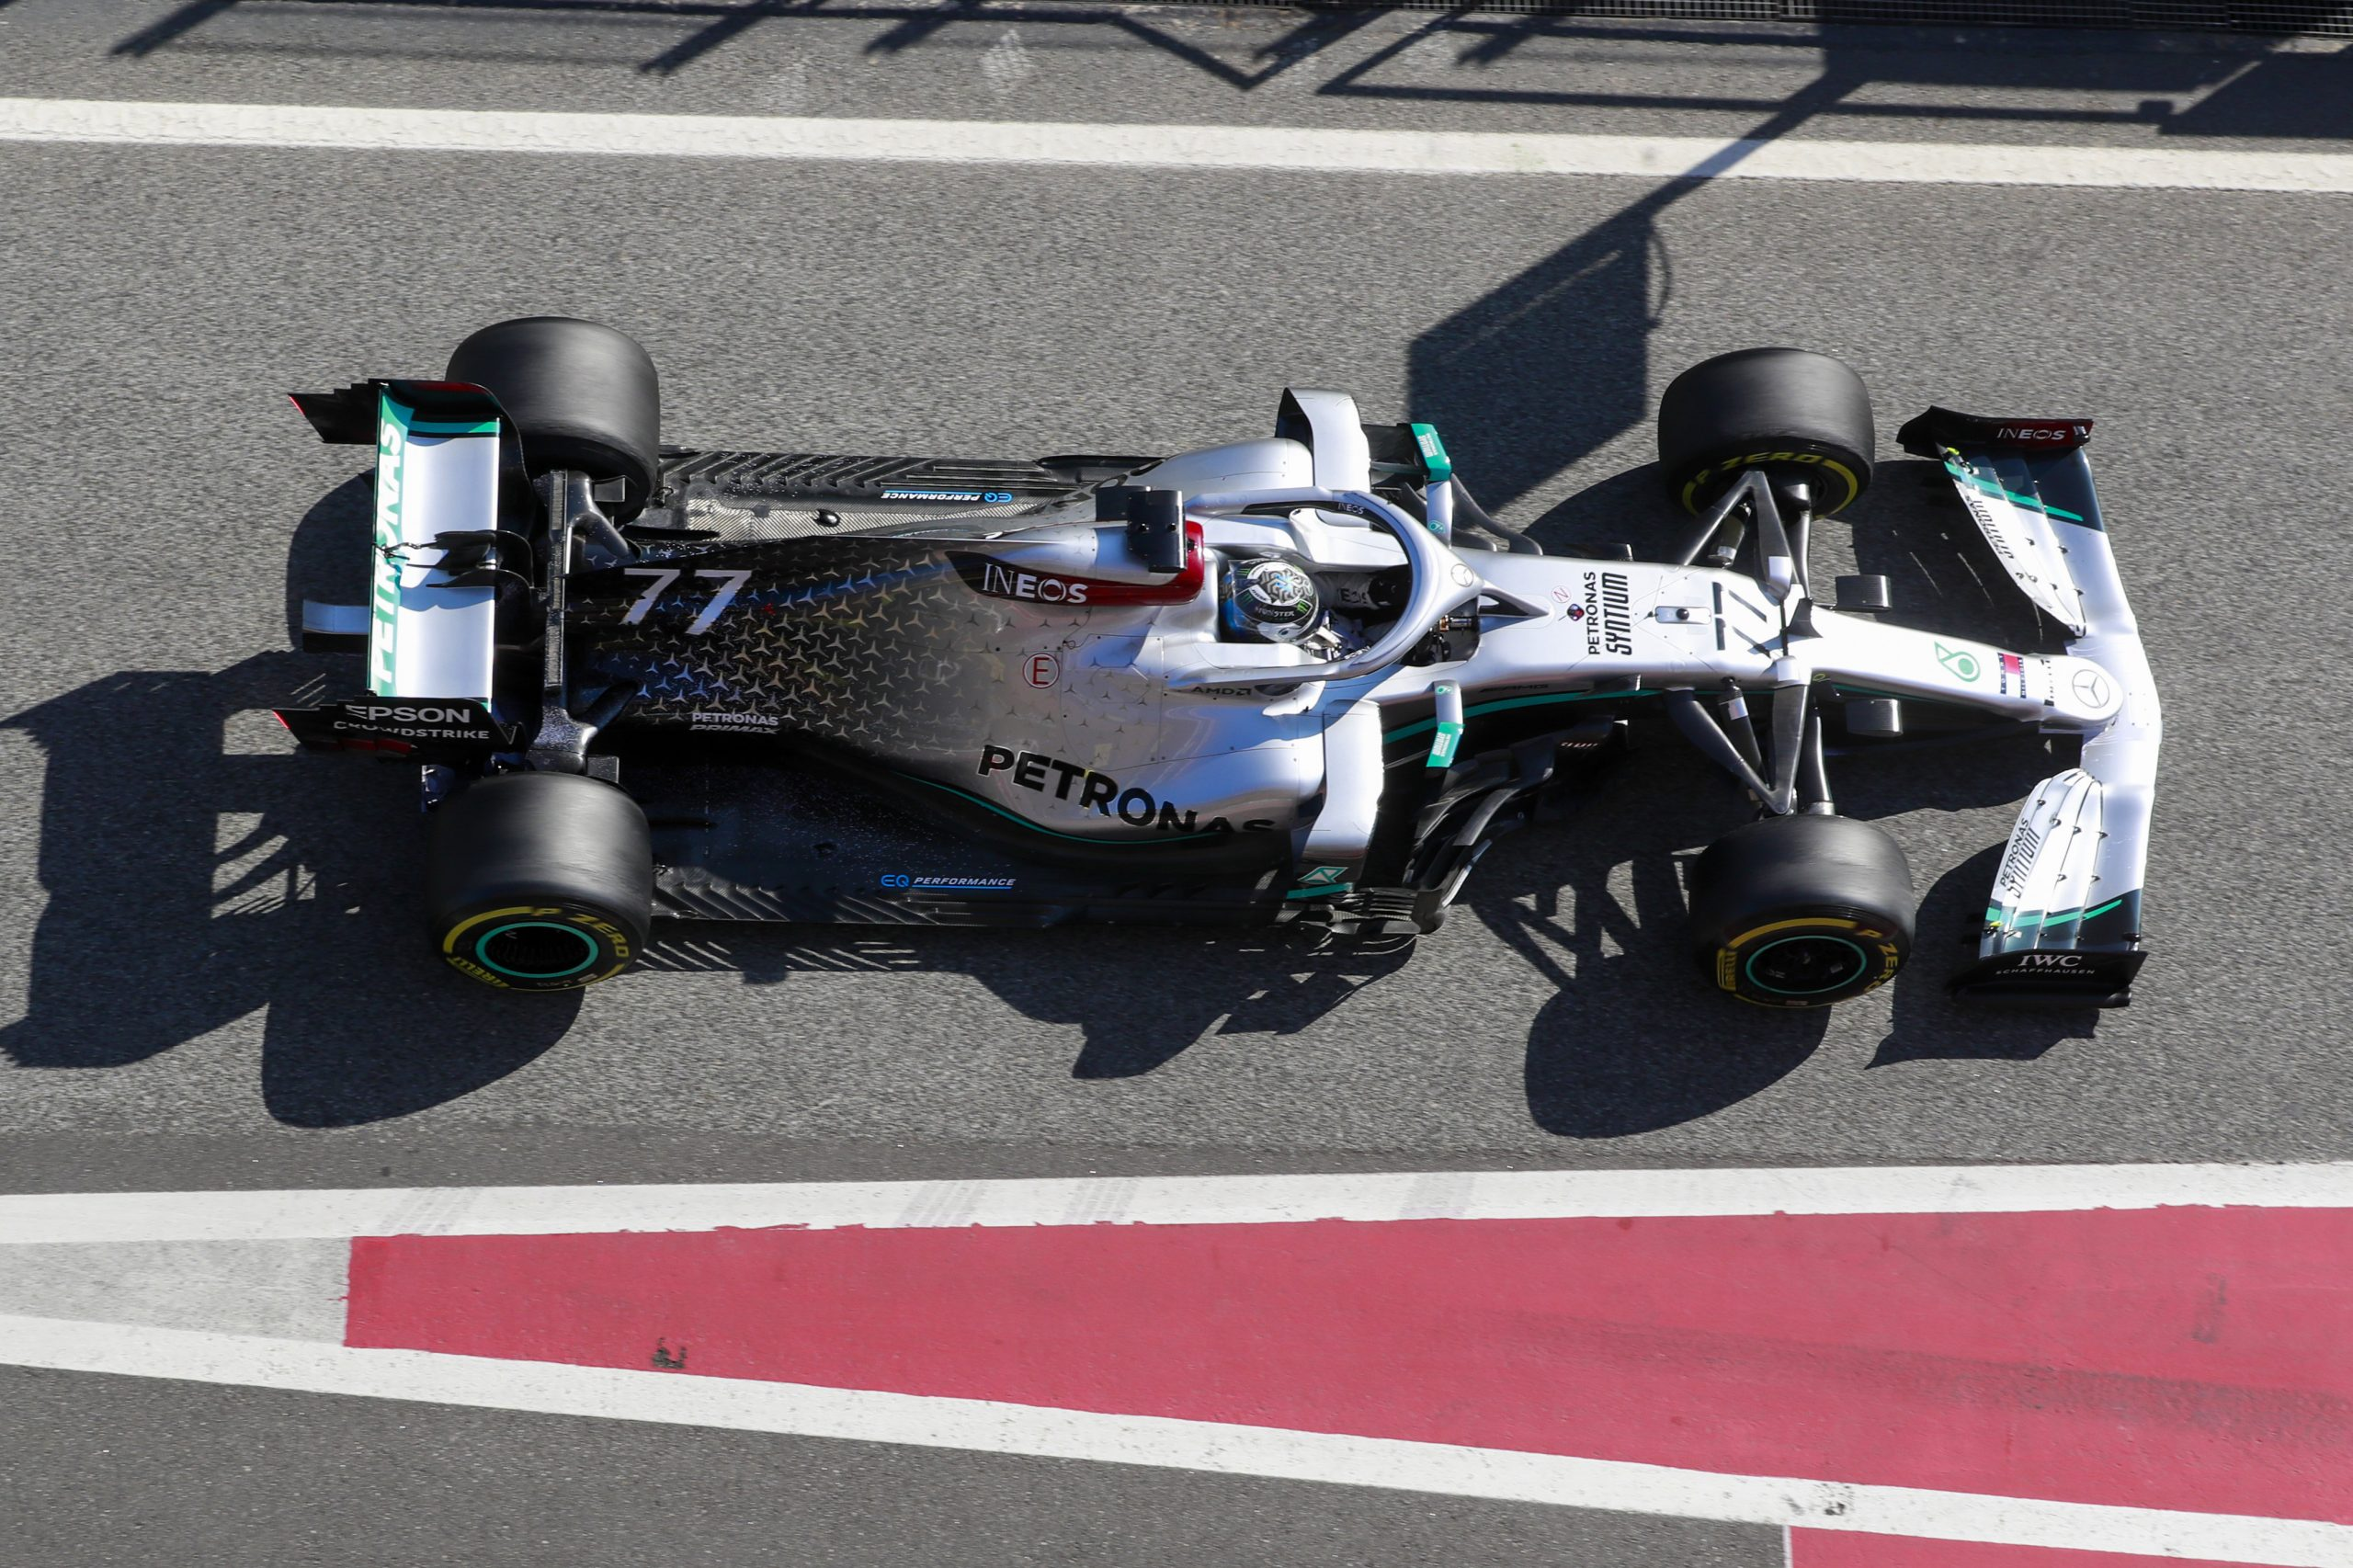 The 2020 Mercedes F1 Car Explained By James Allison